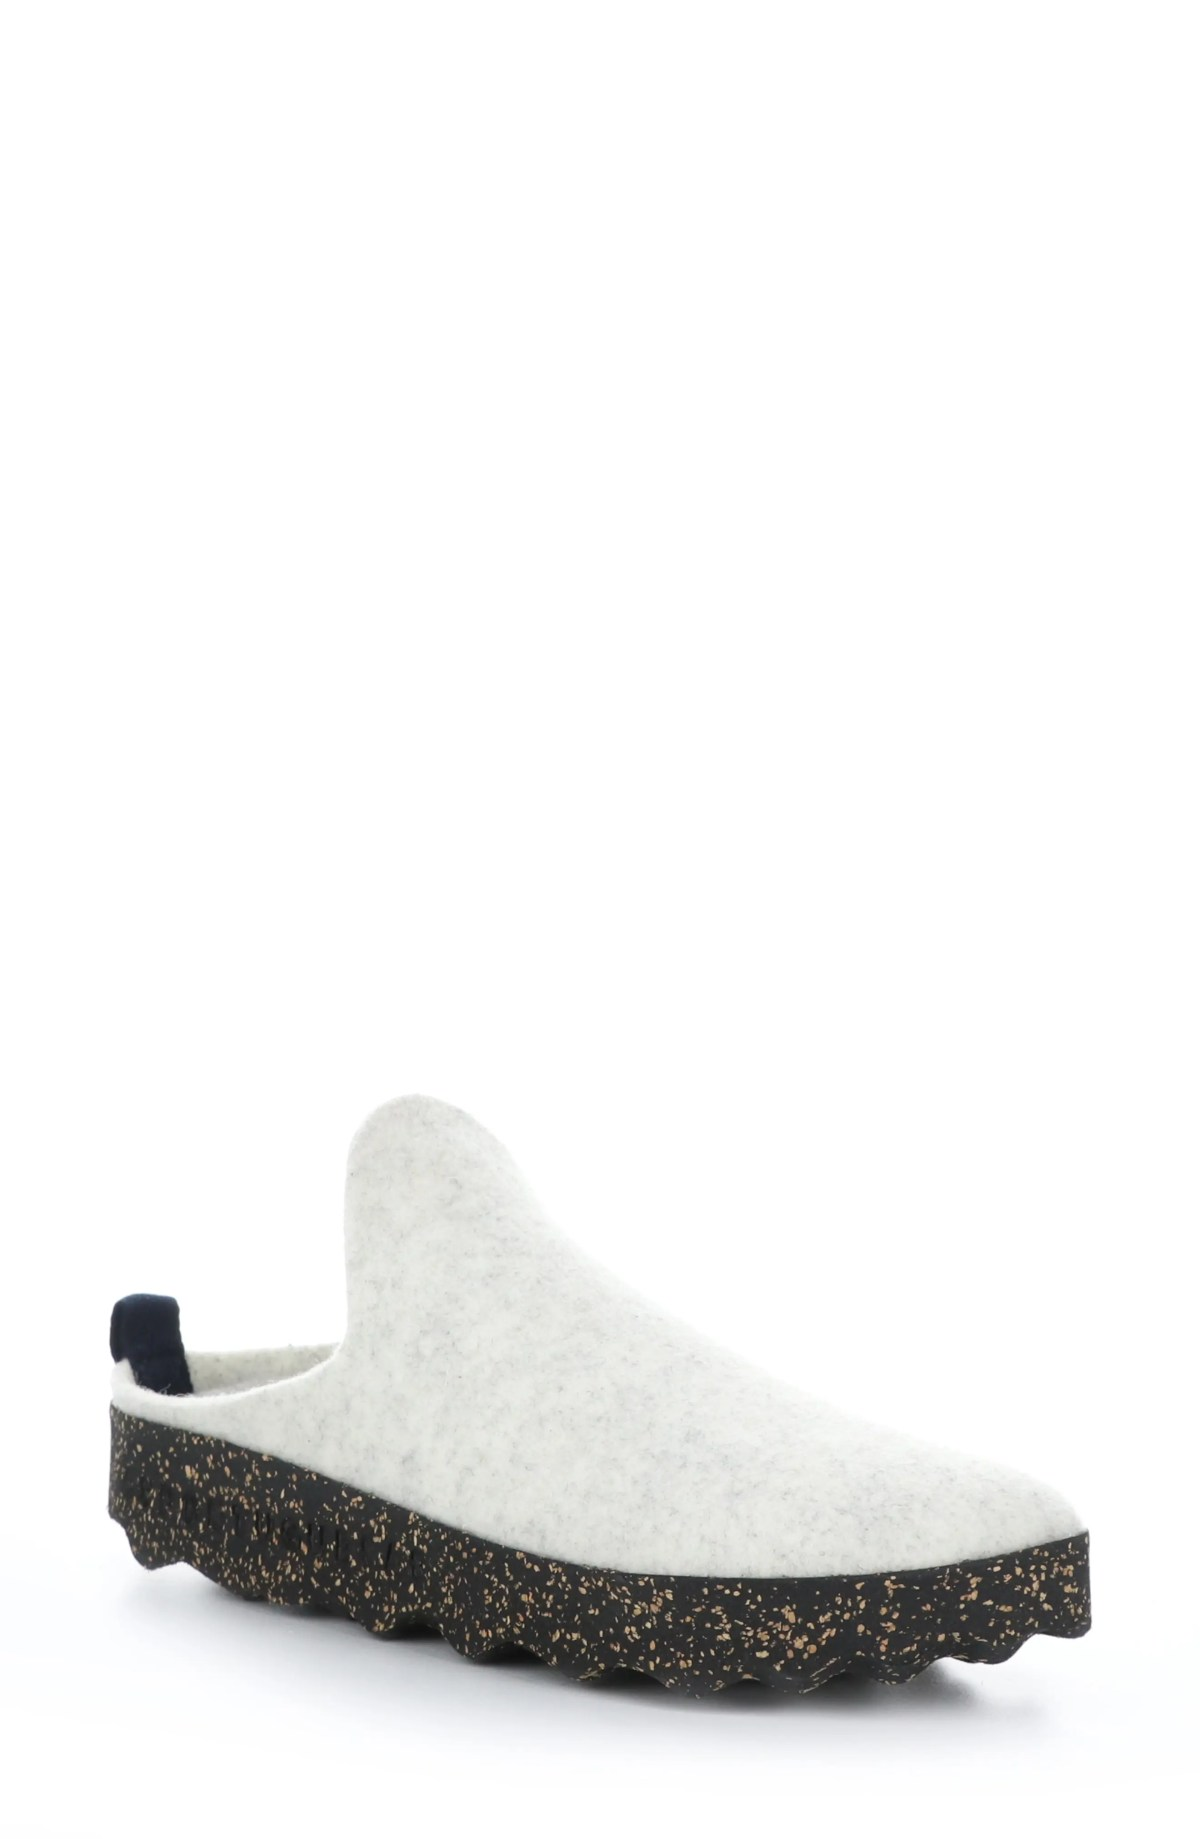 ASPORTUGUESAS BY FLY LONDON Fly London Come Sneaker Mule, Main, color, MARBLE WHITE TWEED/ FELT